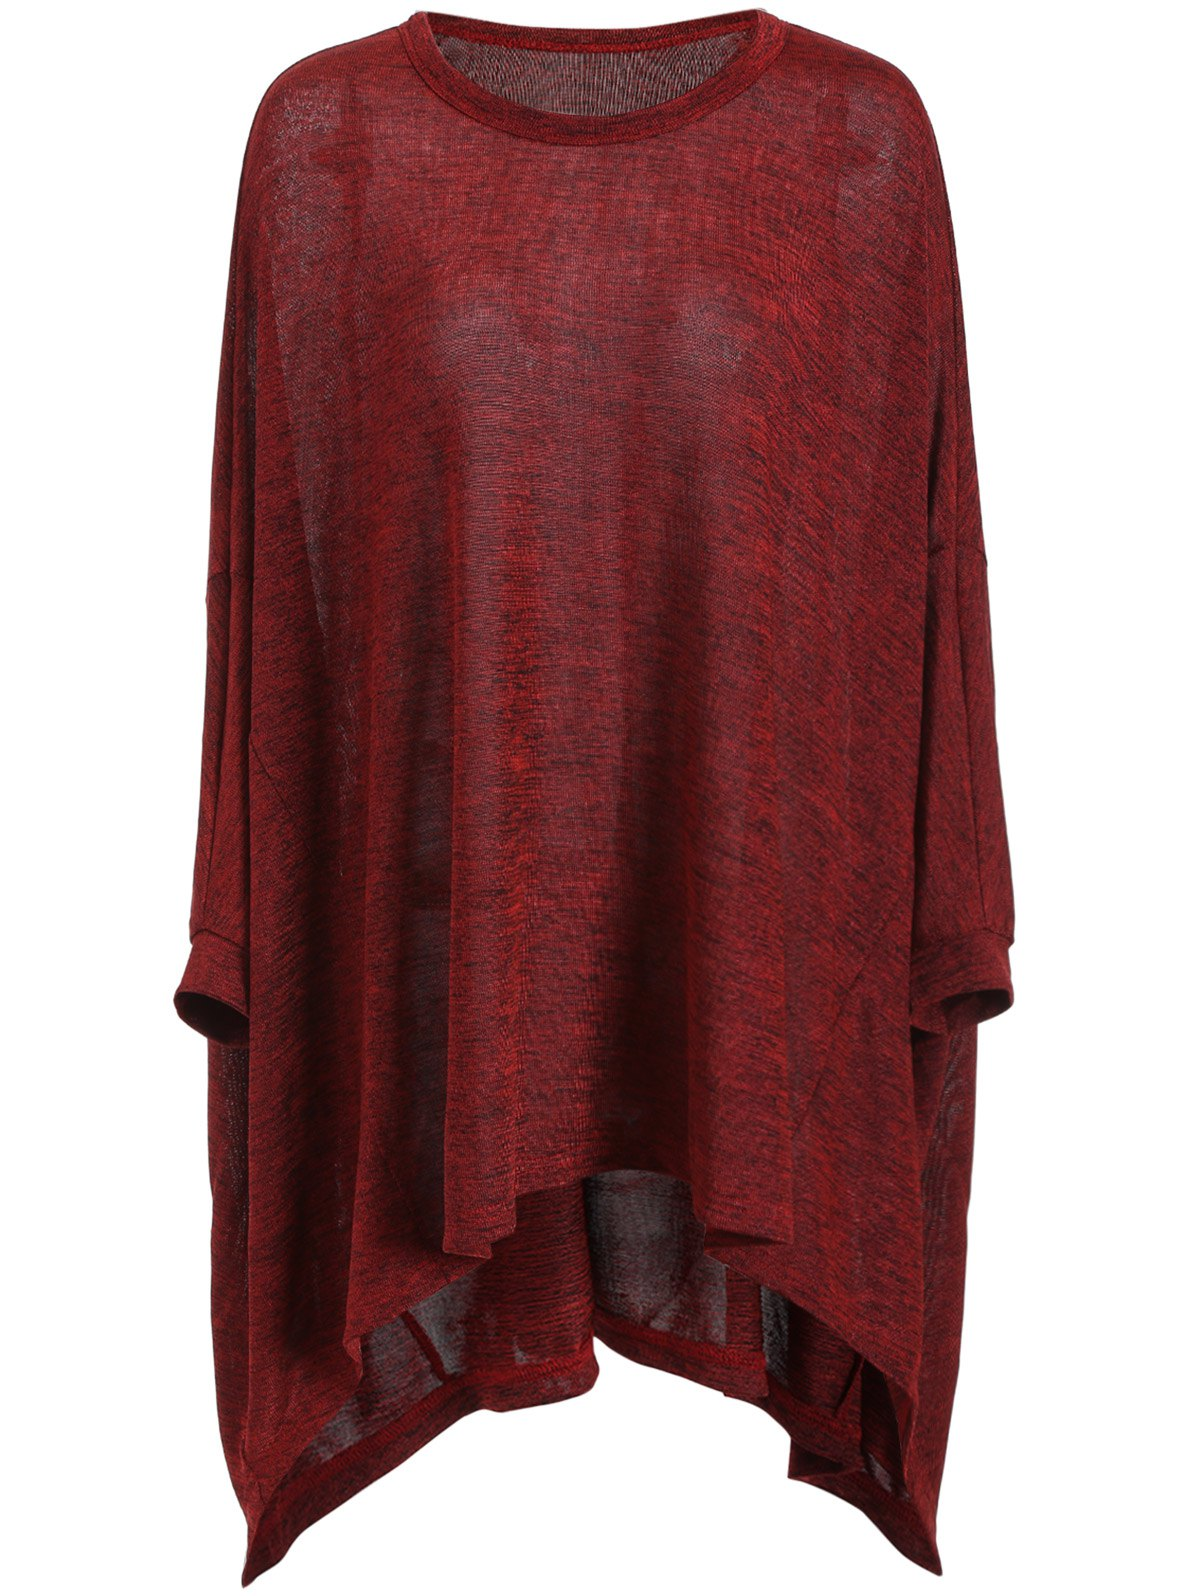 Plus Size Long Sleeve Tunic Tee - DEEP RED 3XL